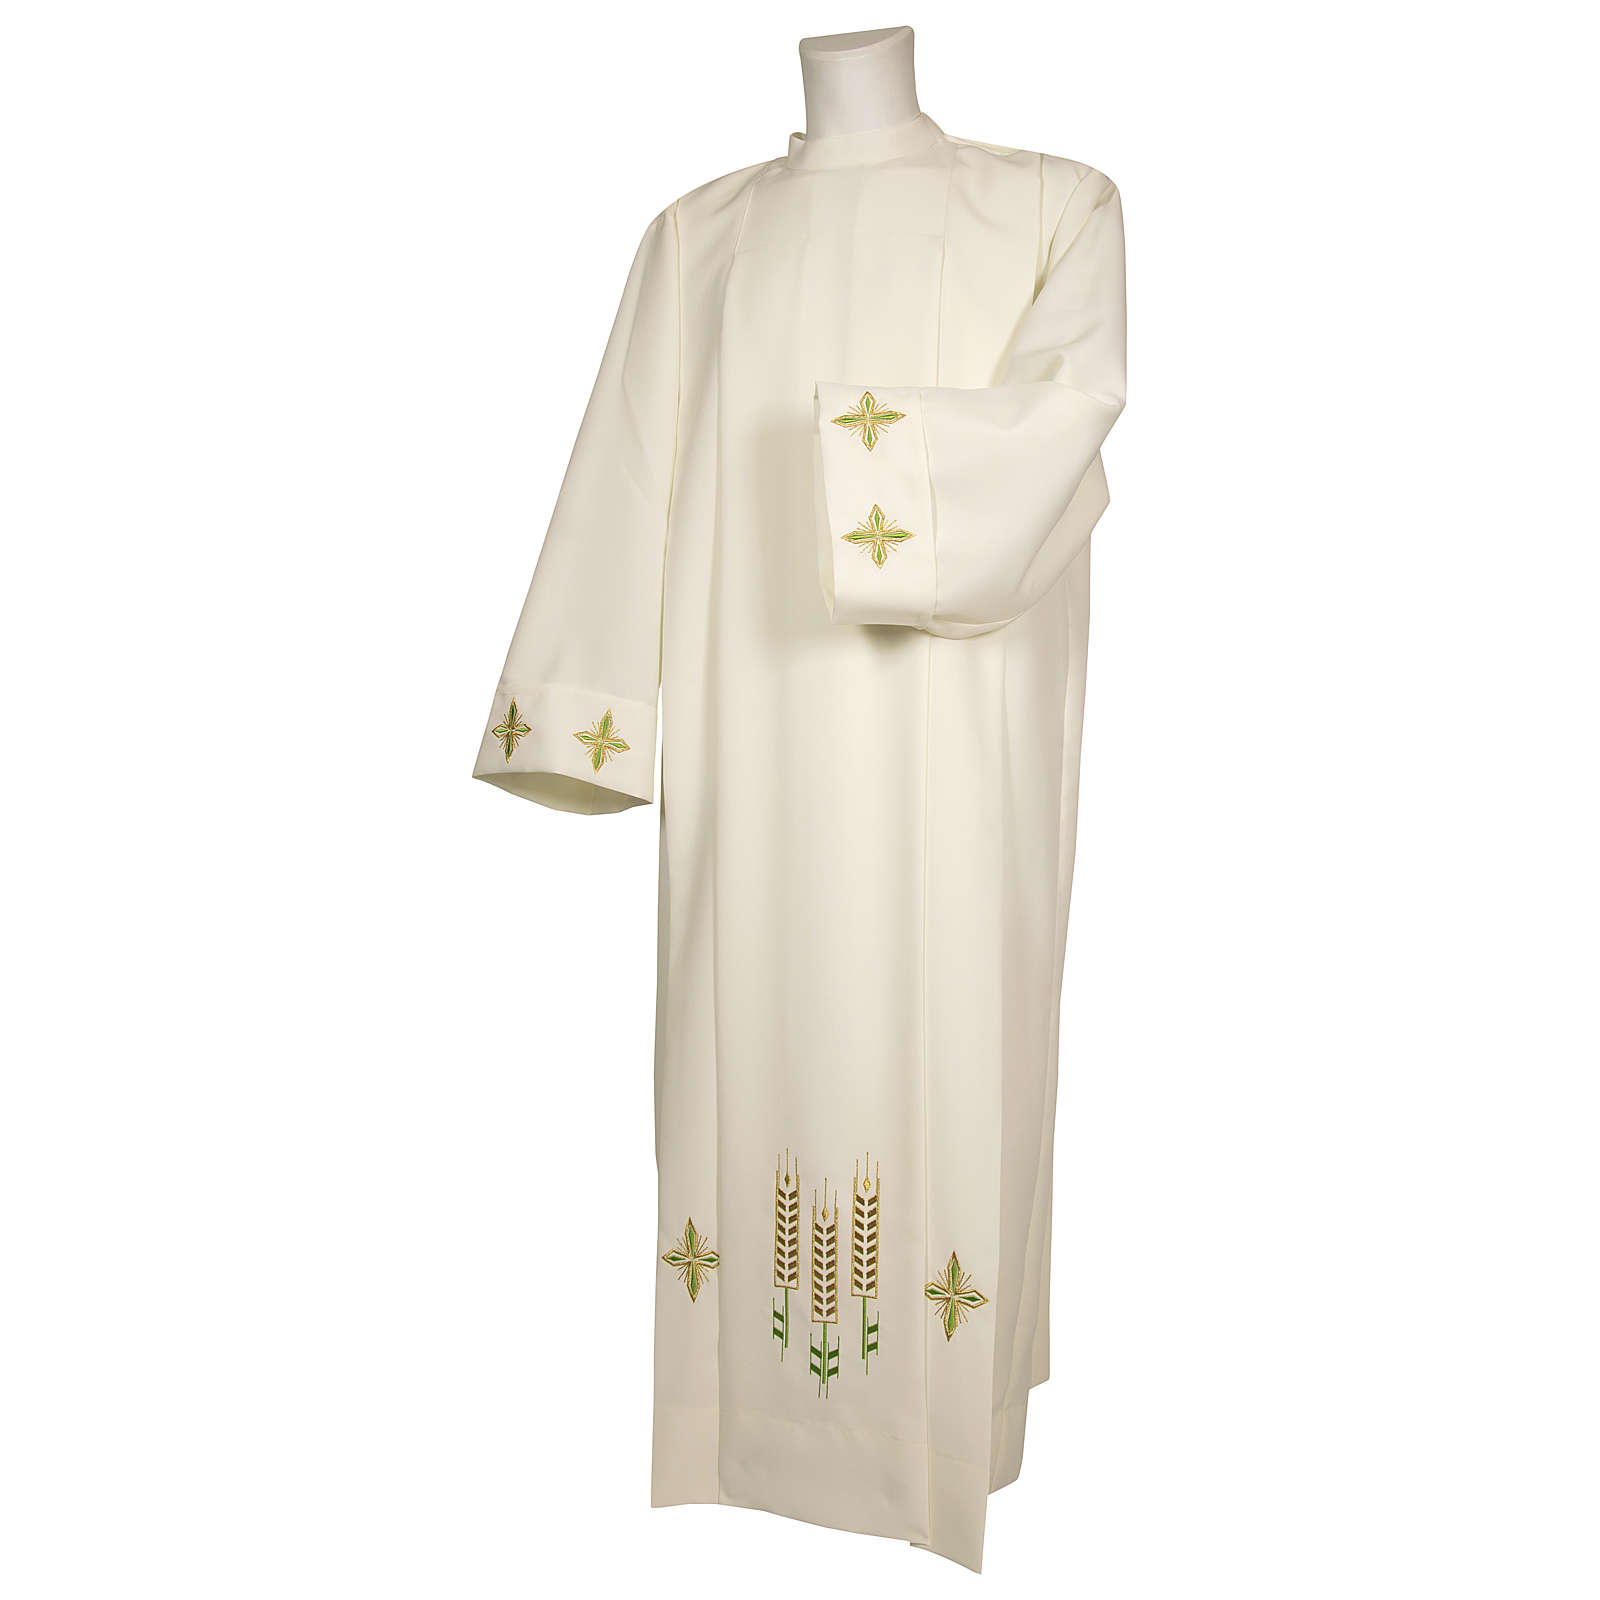 Deacon alb with ears of wheat decoration in 100% polyester, zip on the front, ivory color 4